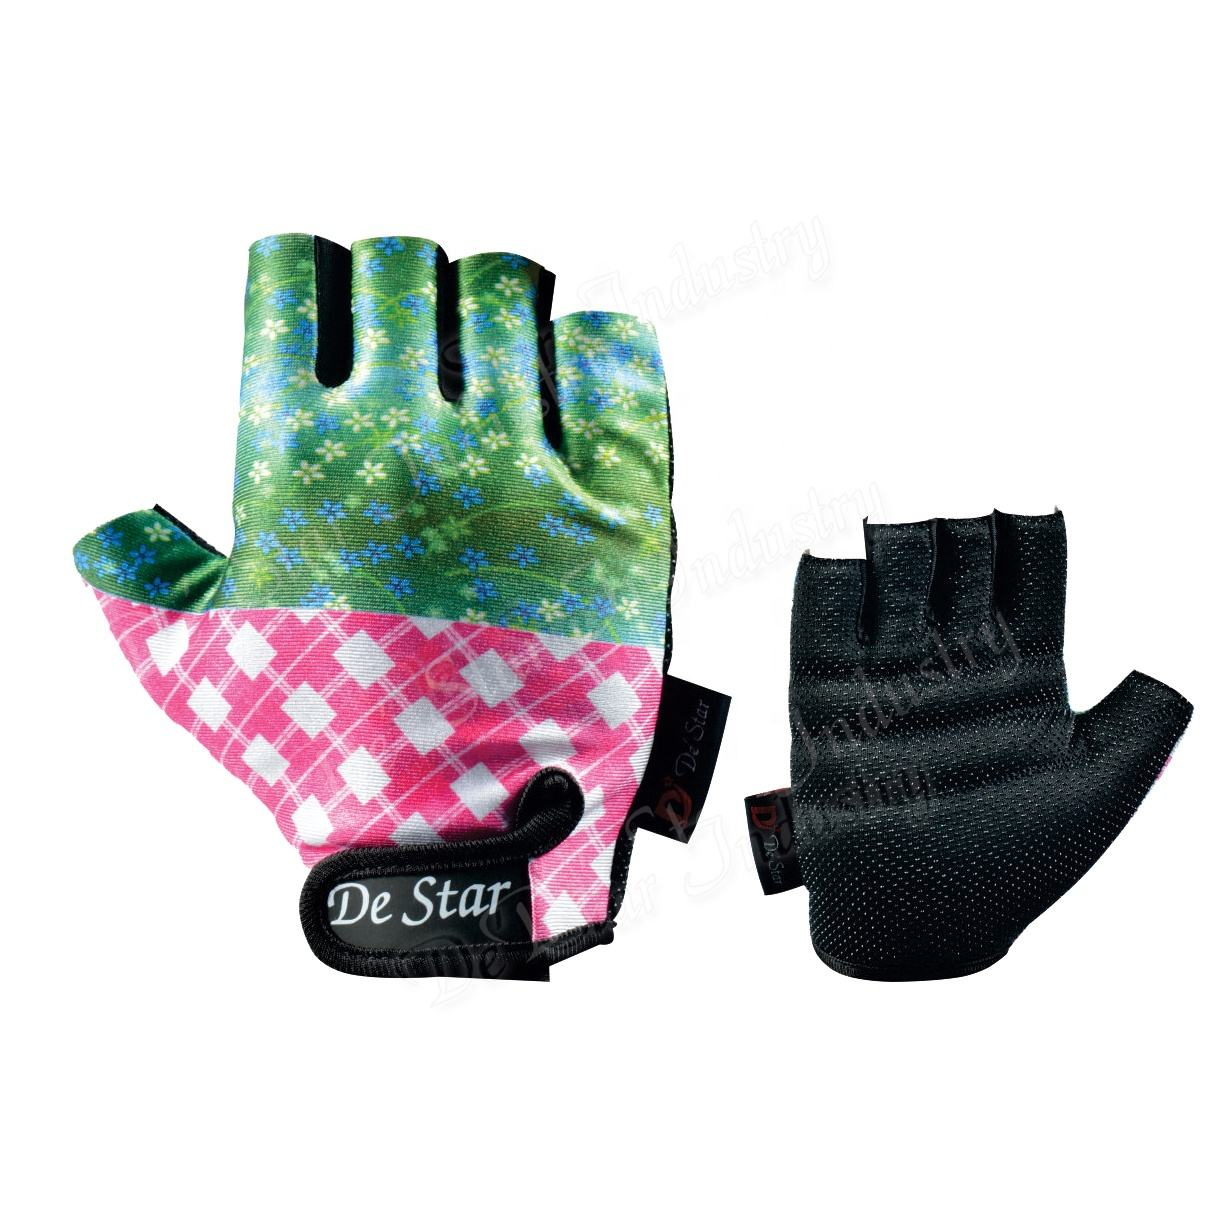 New Adult Bicycling Gloves Racing Gloves Custom Sublimation Design Bike Bicycle Unisex Cycling Gloves